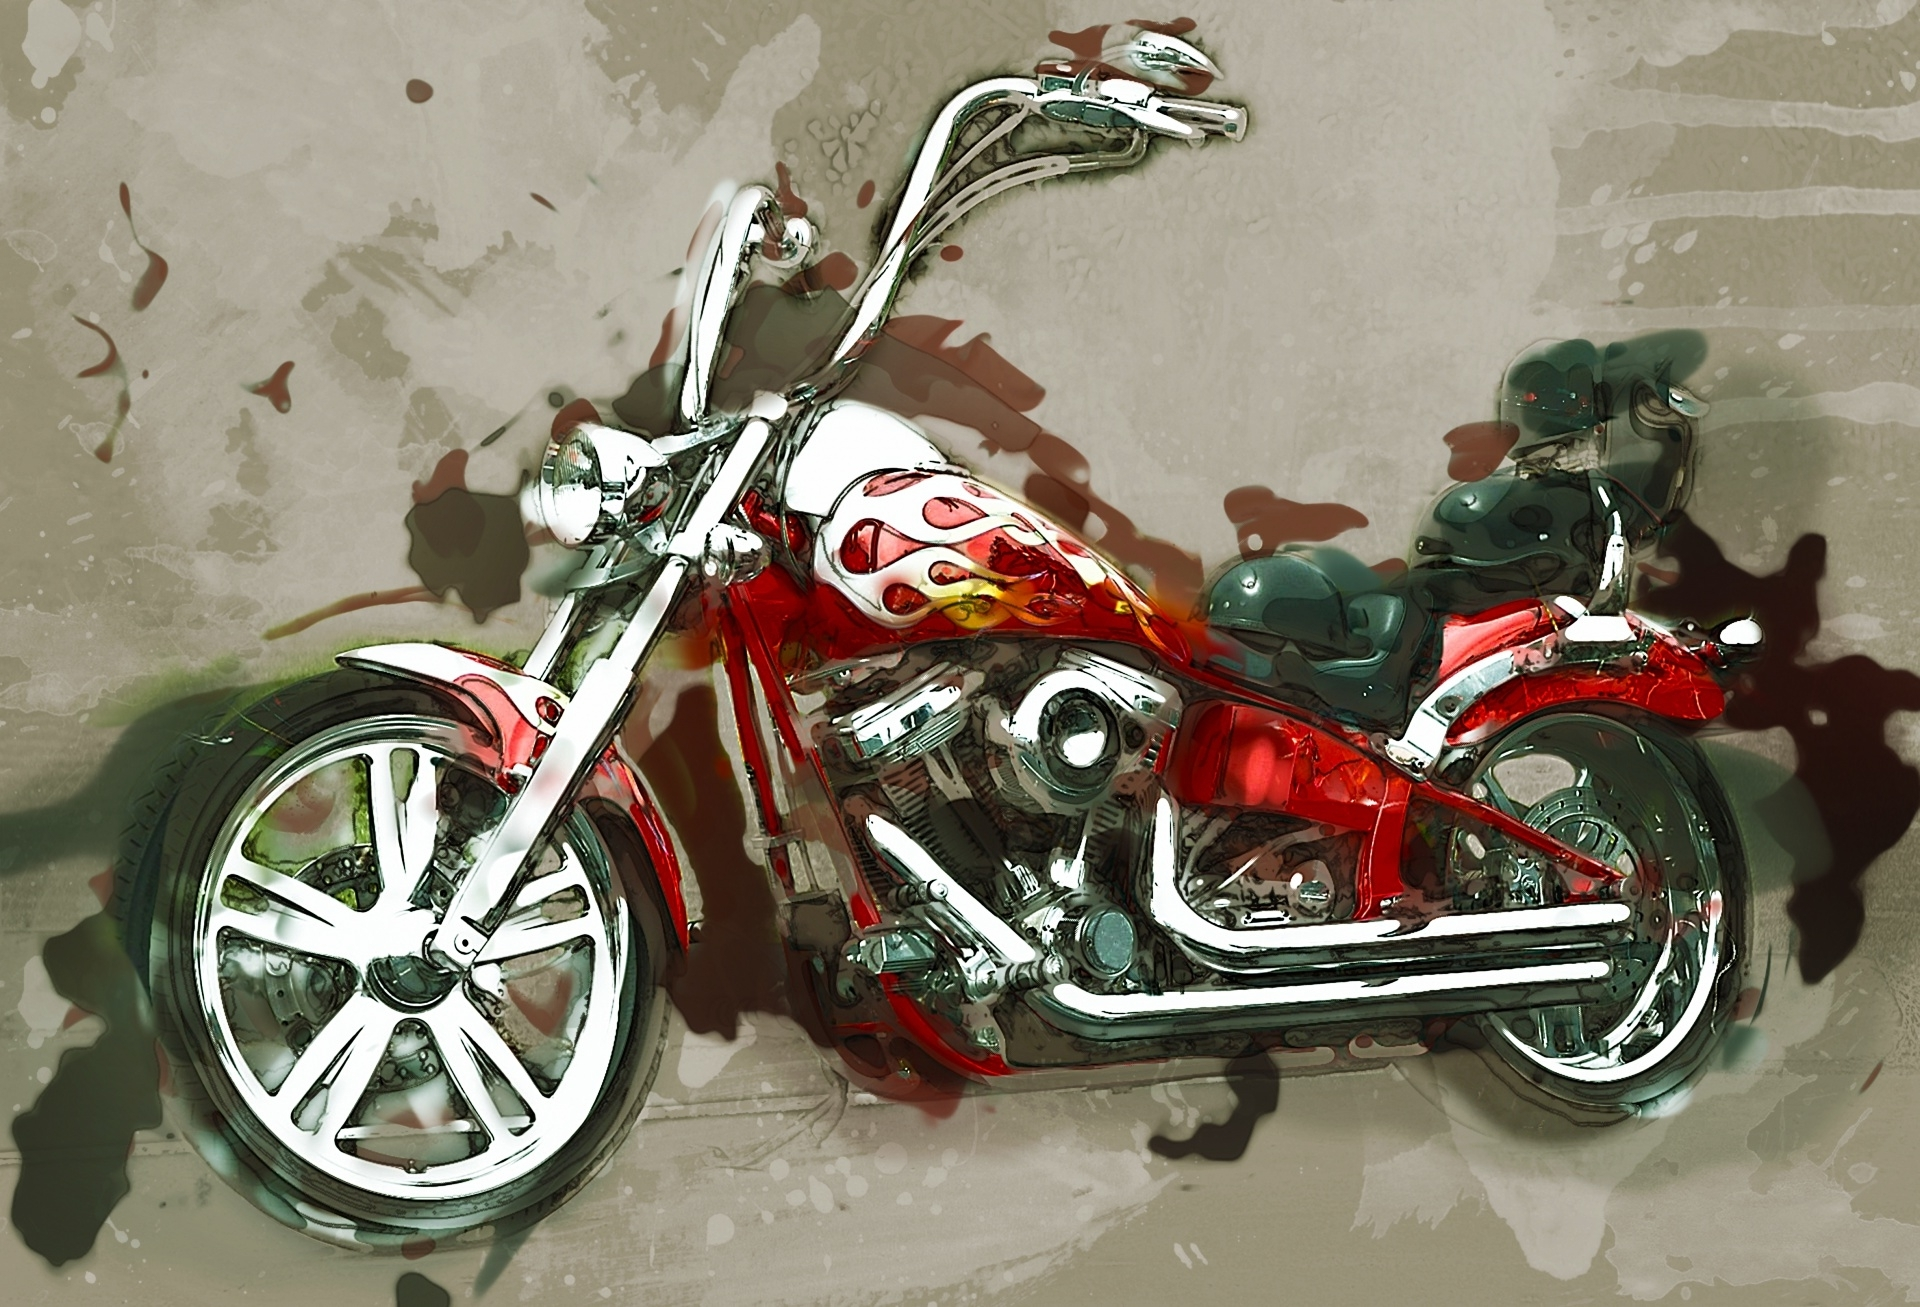 Well Known Motorcycle Wall Art With Regard To Motorcycle Wall Art Free Stock Photo – Public Domain Pictures (View 15 of 15)